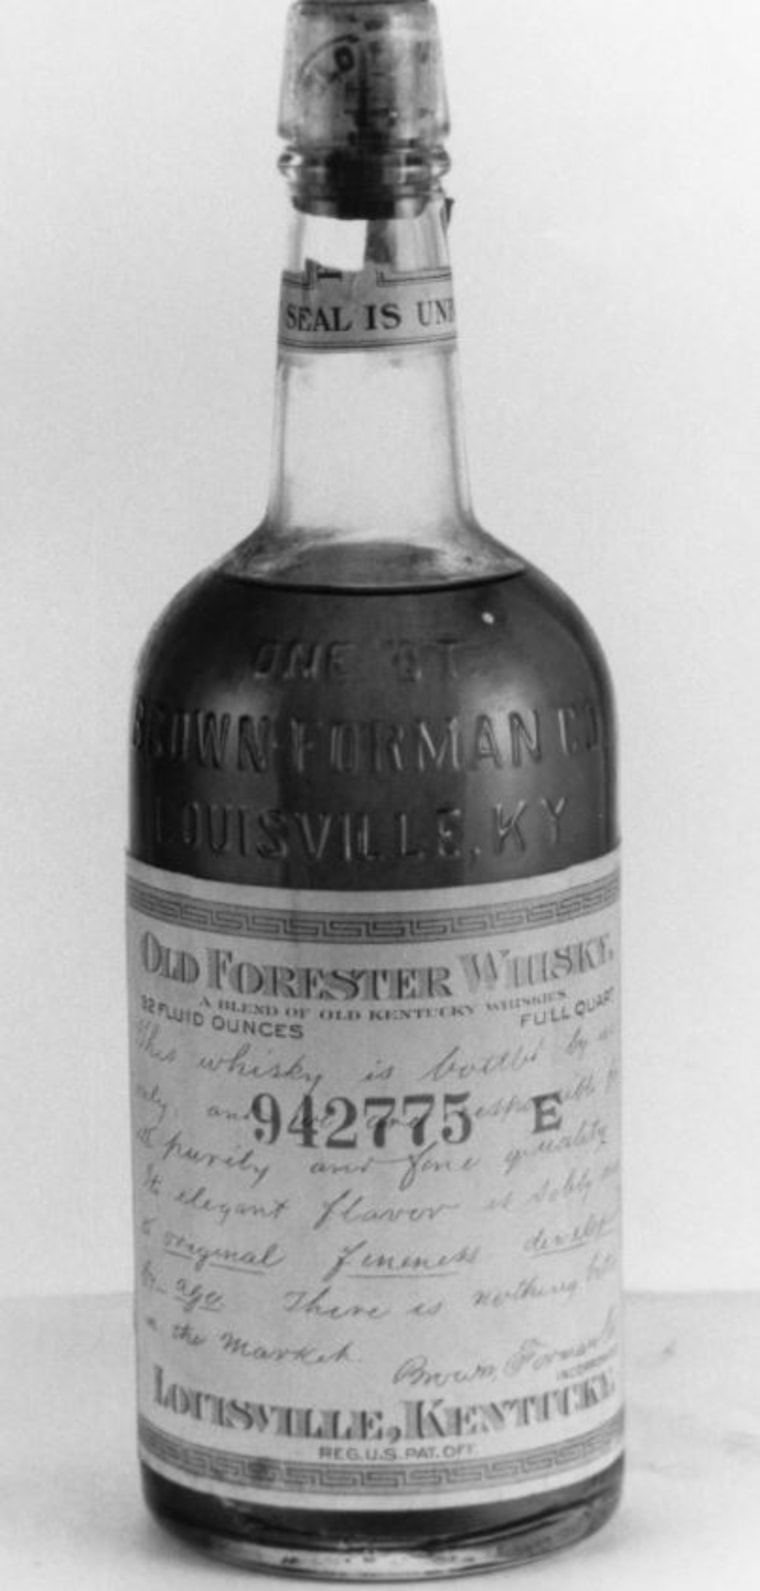 Antique bottles of whiskey used to be relegated to museum displays or private collections.